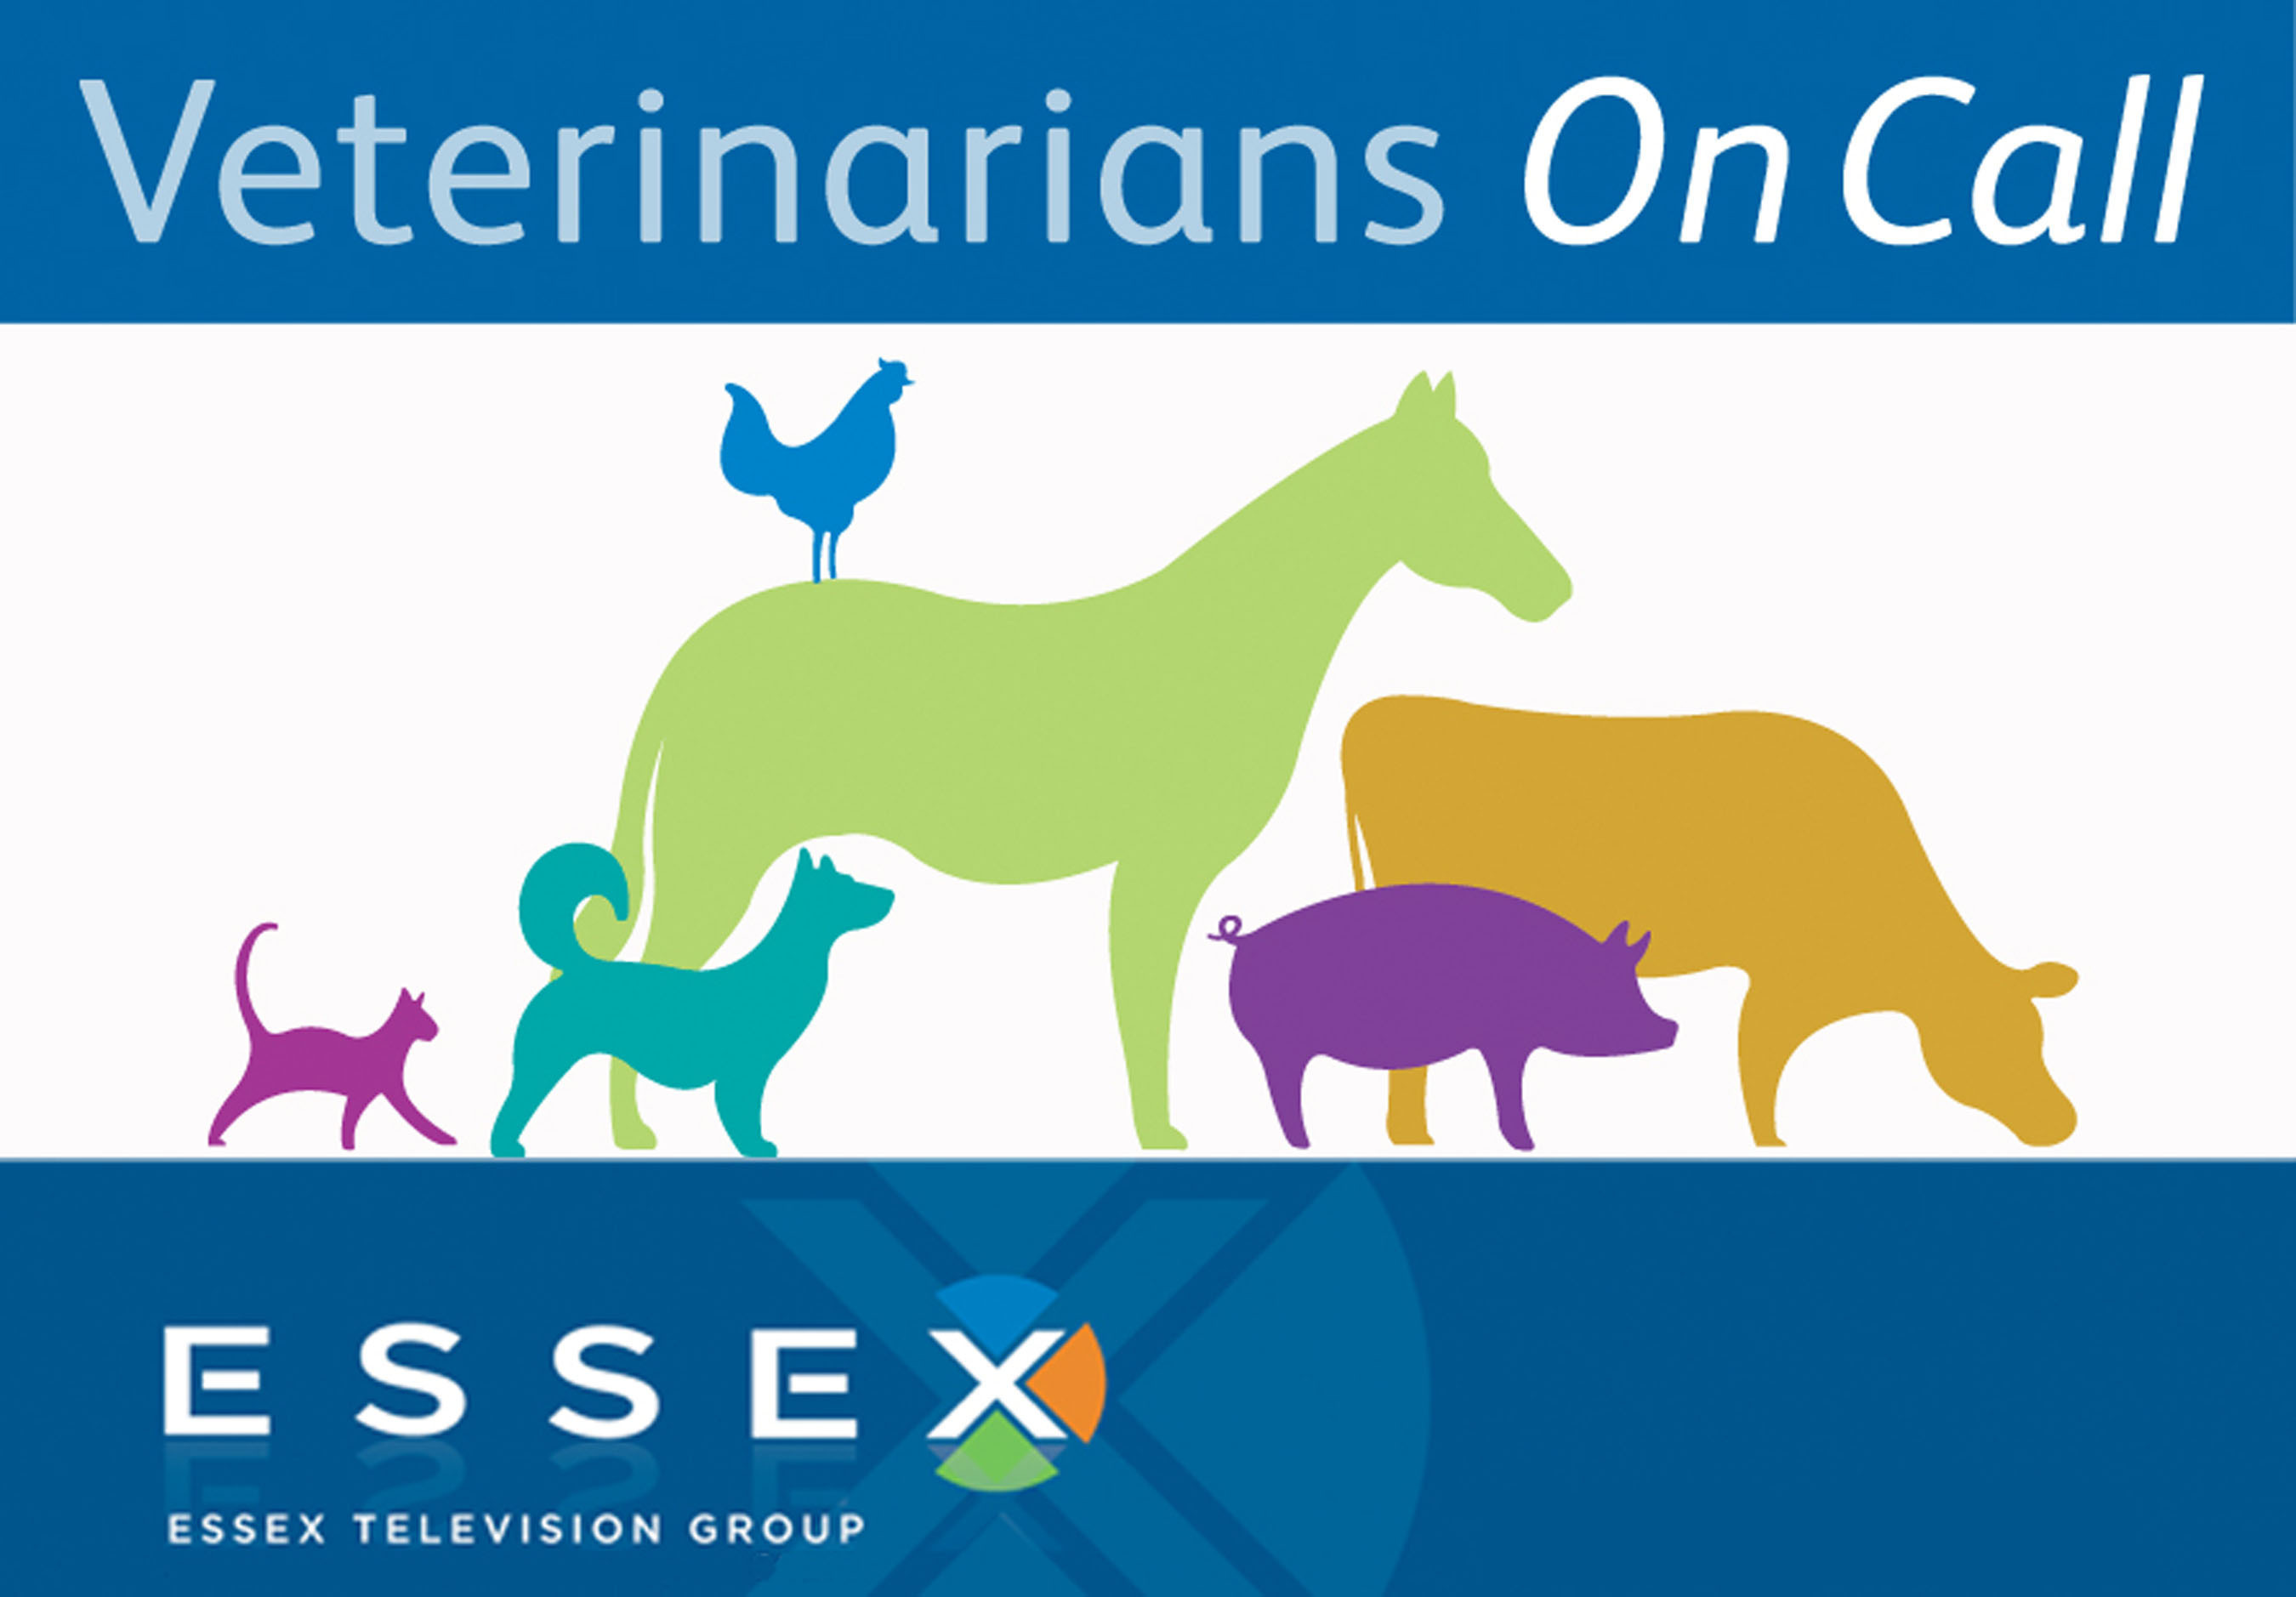 ESSEX TELEVISION GROUP, INC. VETERINARIANS ON CALL